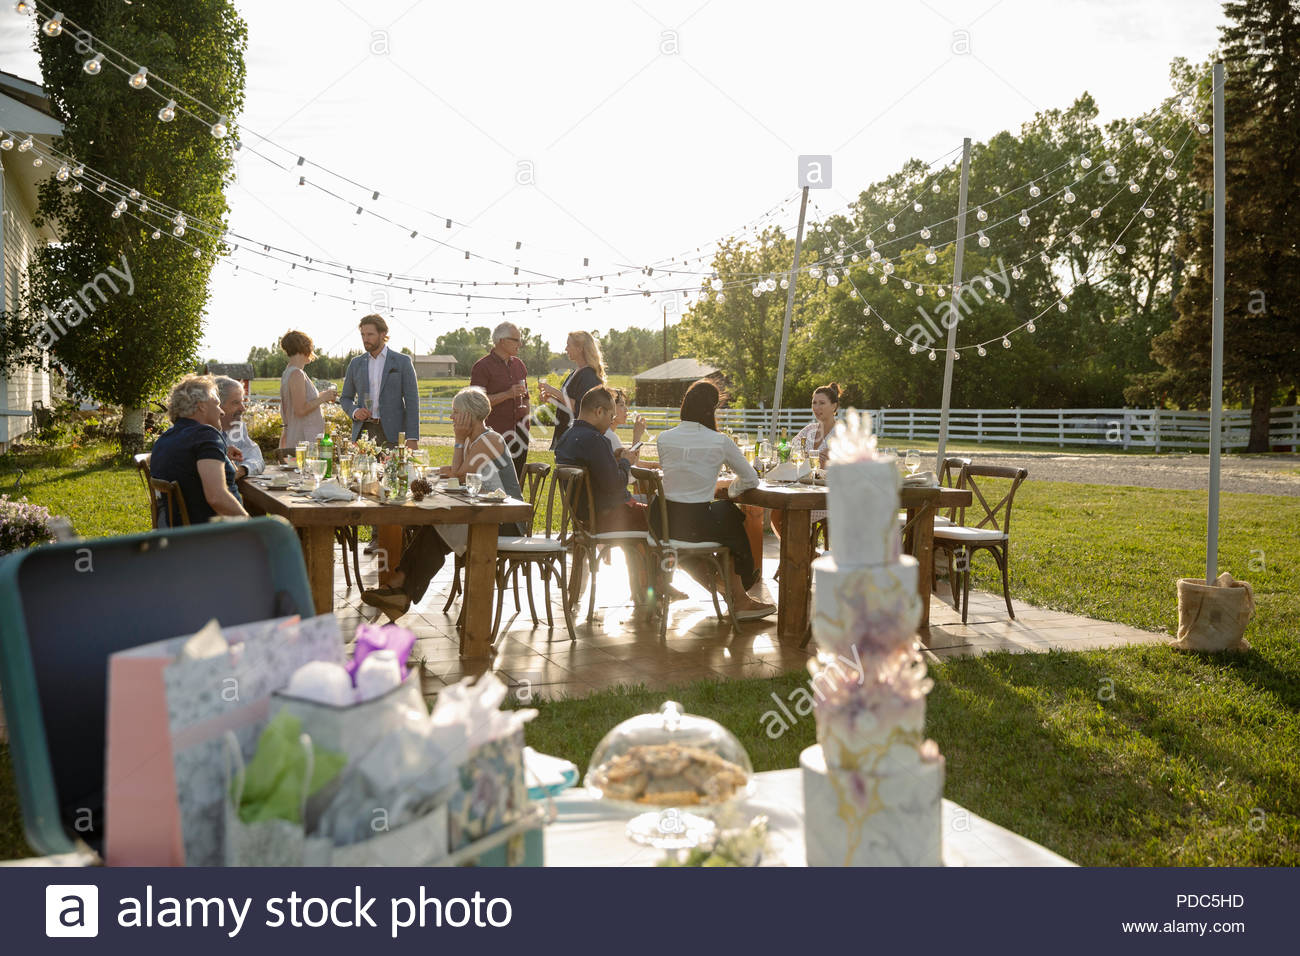 Friends celebrating behind tiered wedding cake, gifts and flowers on patio table - Stock Image